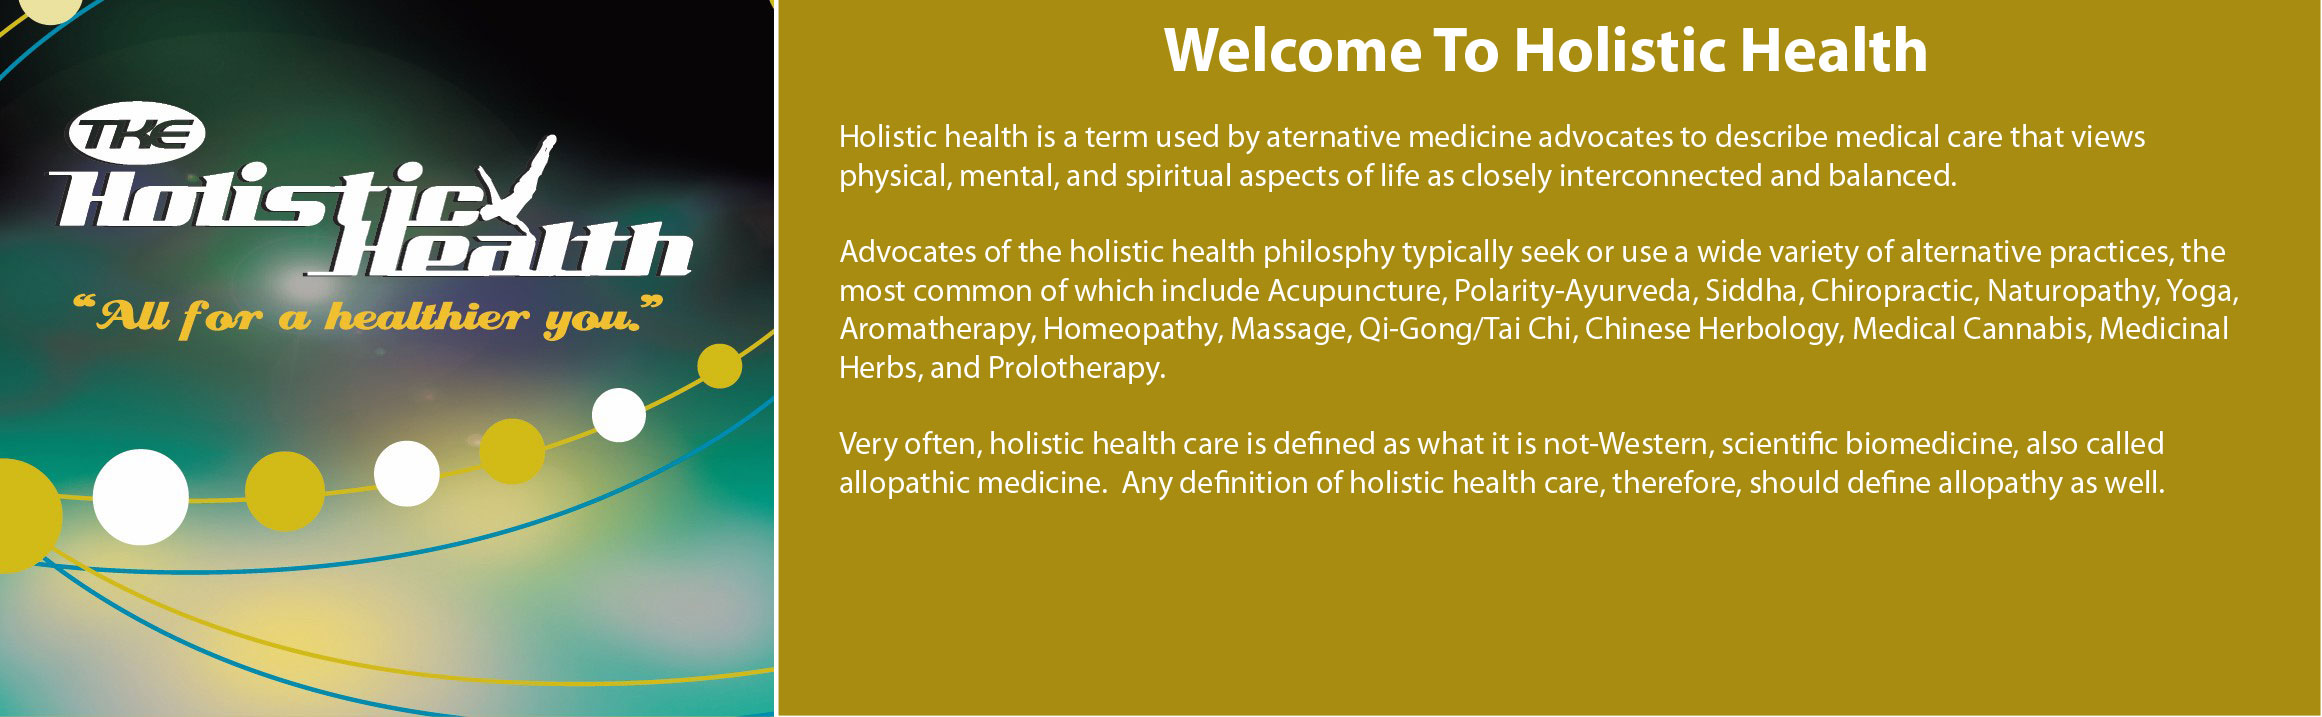 TKE Holistic Health - Website Header - Logo